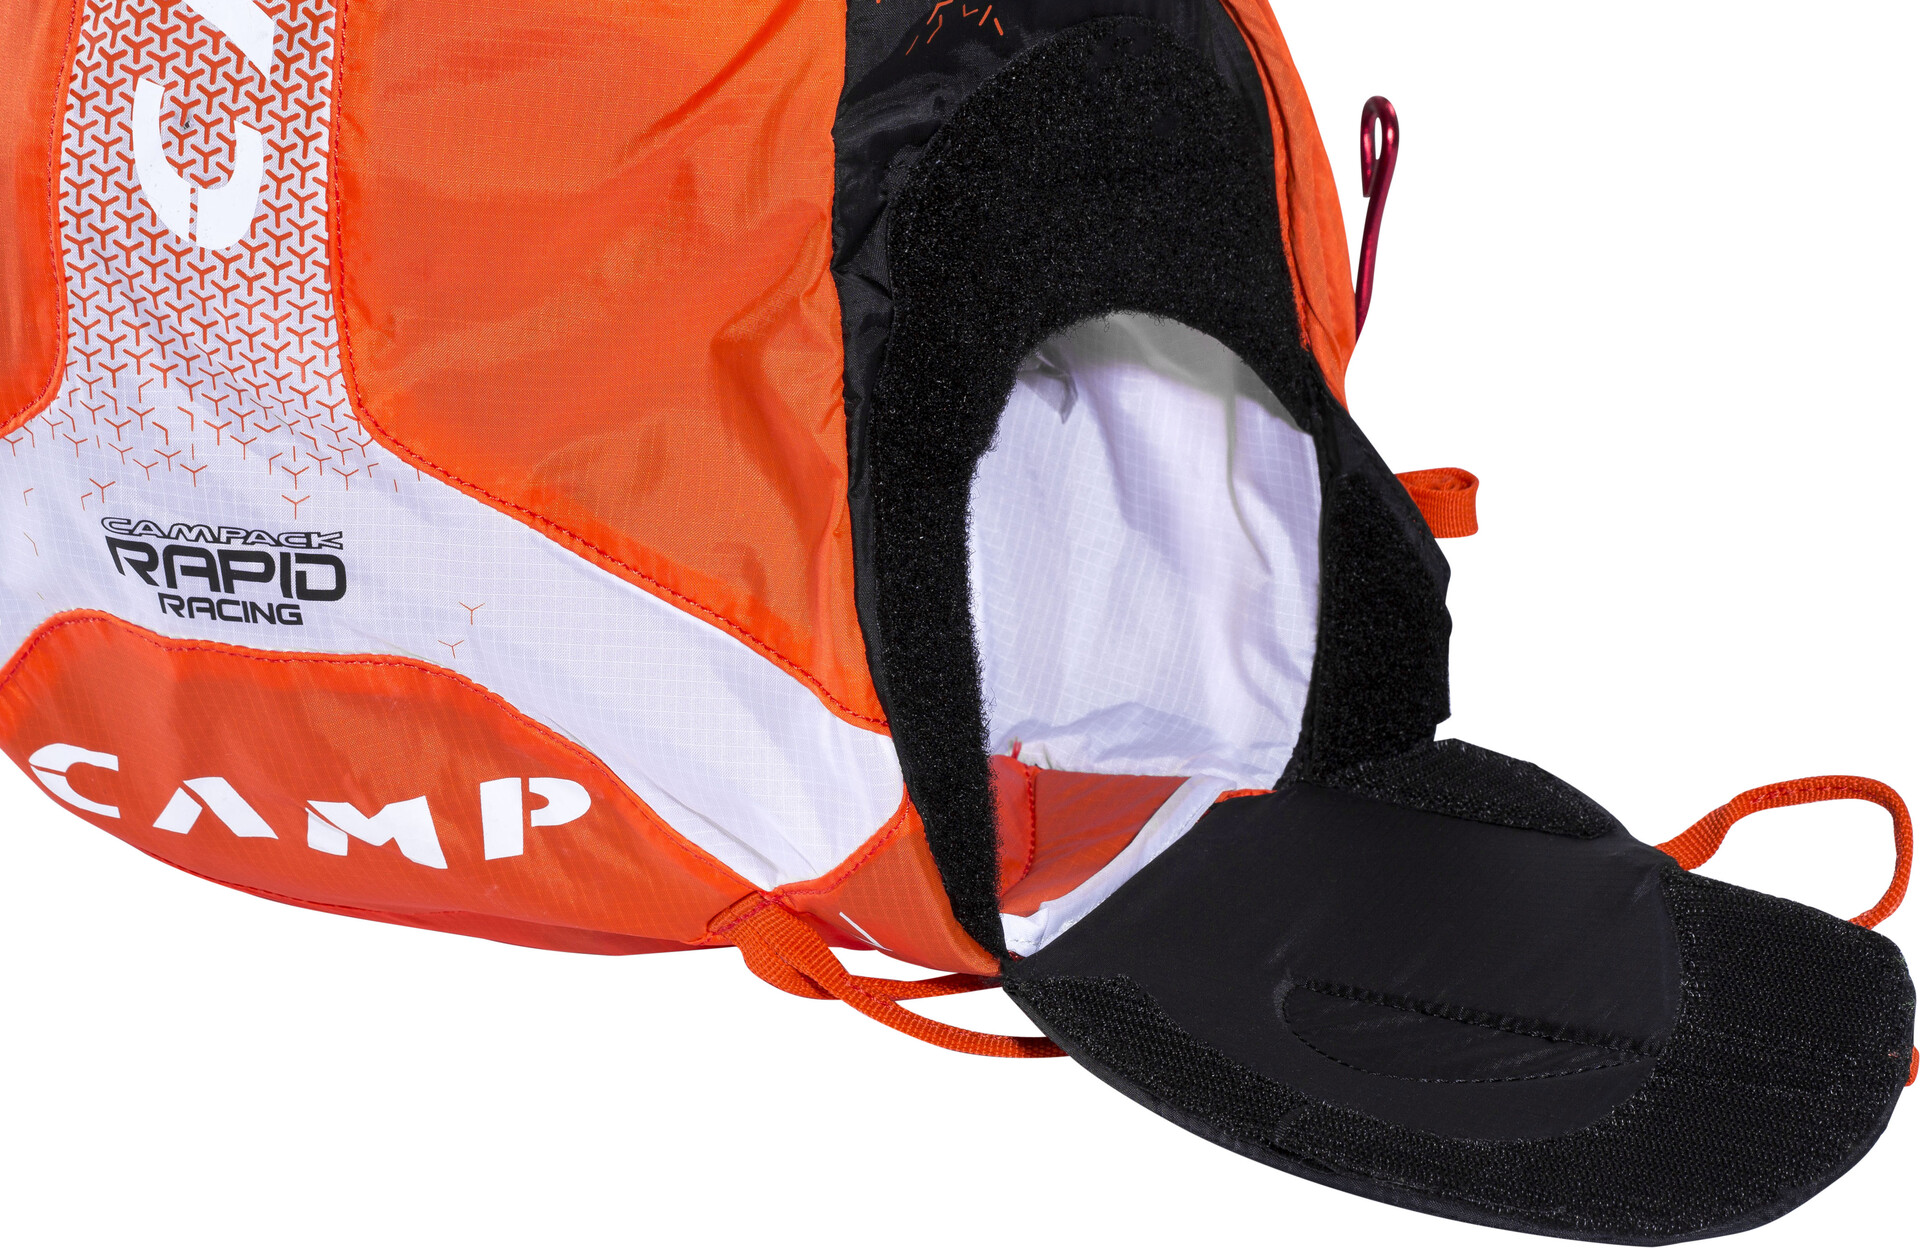 Klettergurt Camp : Camp rapid racing backpack l red white campz